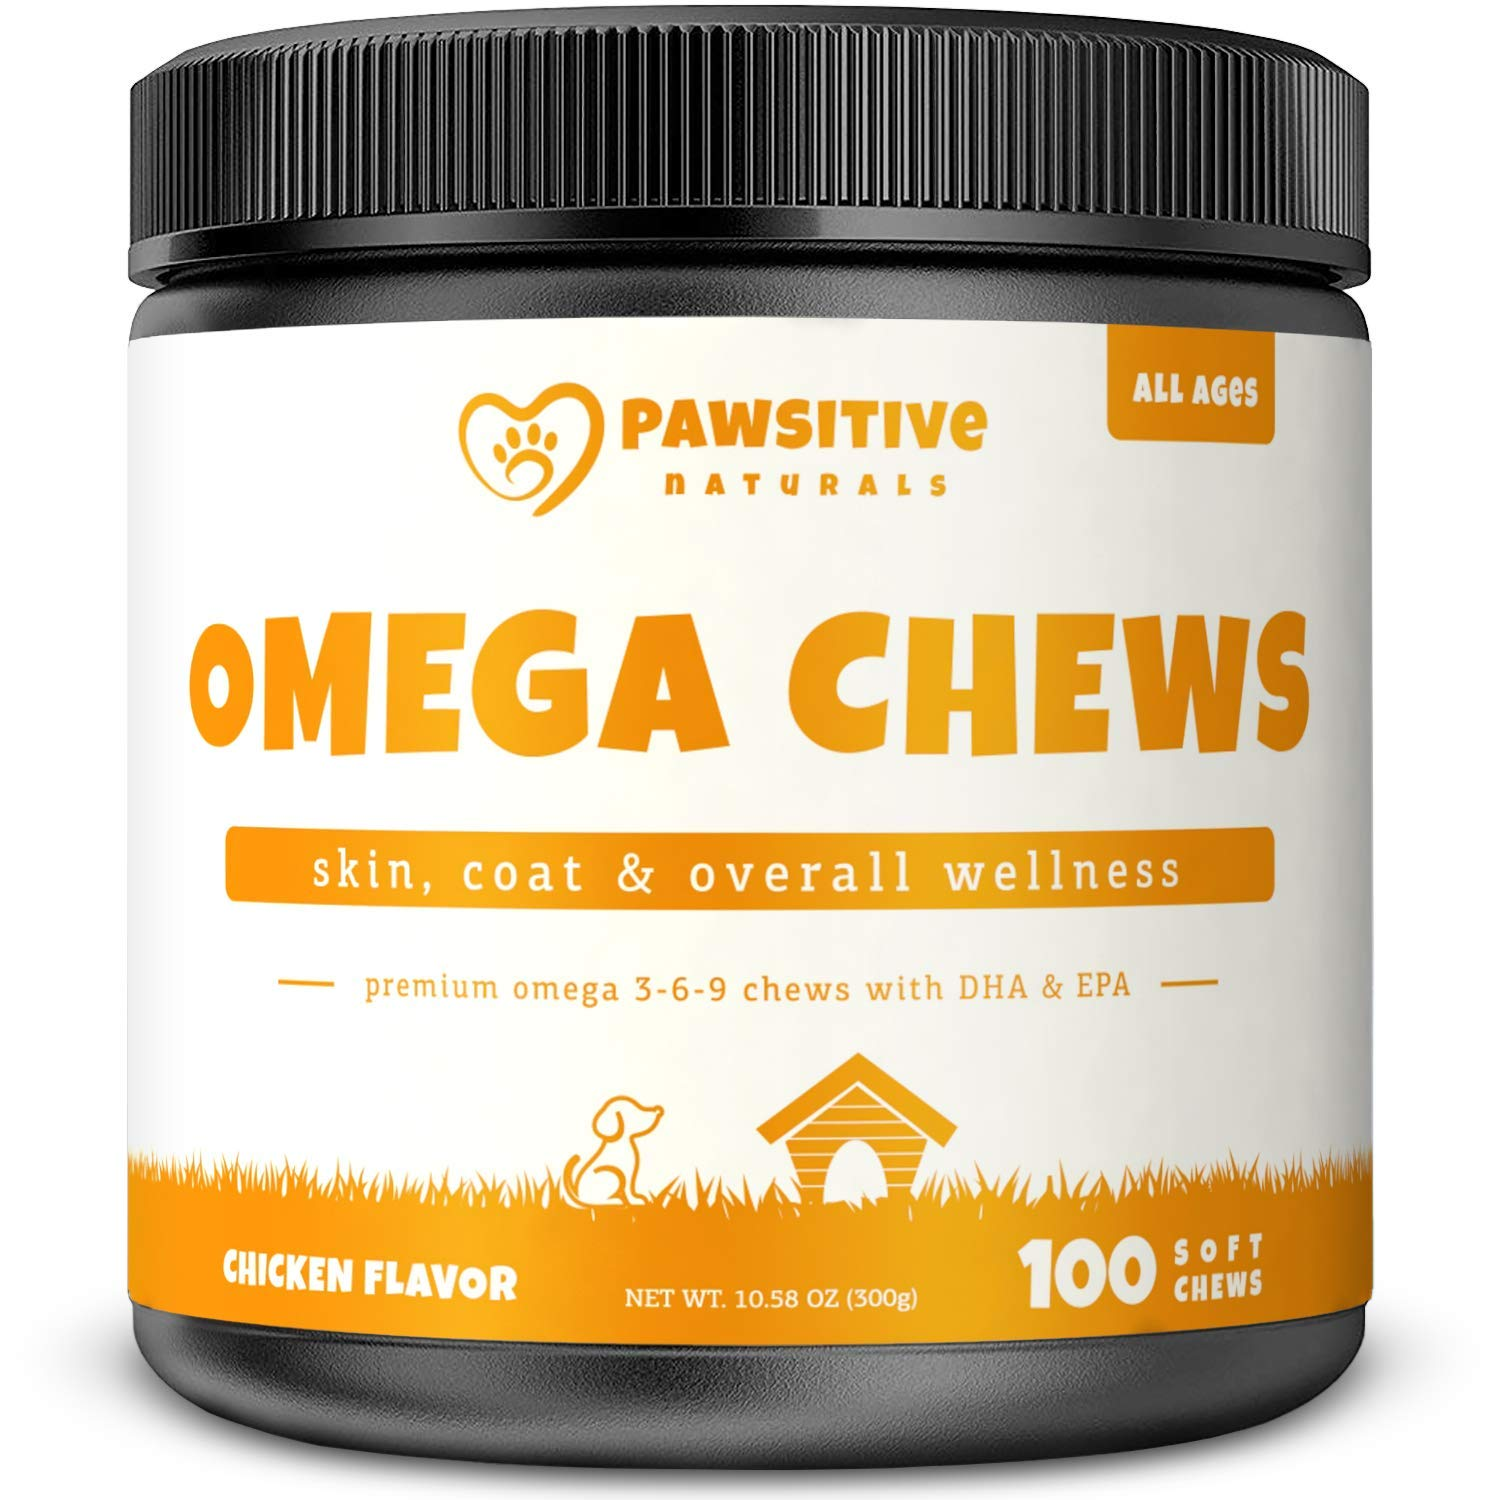 Omega 3 Fish Oil for Dogs - 100 Soft Chew Bites with Omega 3 6 9 & EPA + DHA Fatty Acids for Shiny Coats & Itch Free Skin - Natural Dog Hip & Joint Support - Heart & Brain Health by Pawsitive Naturals